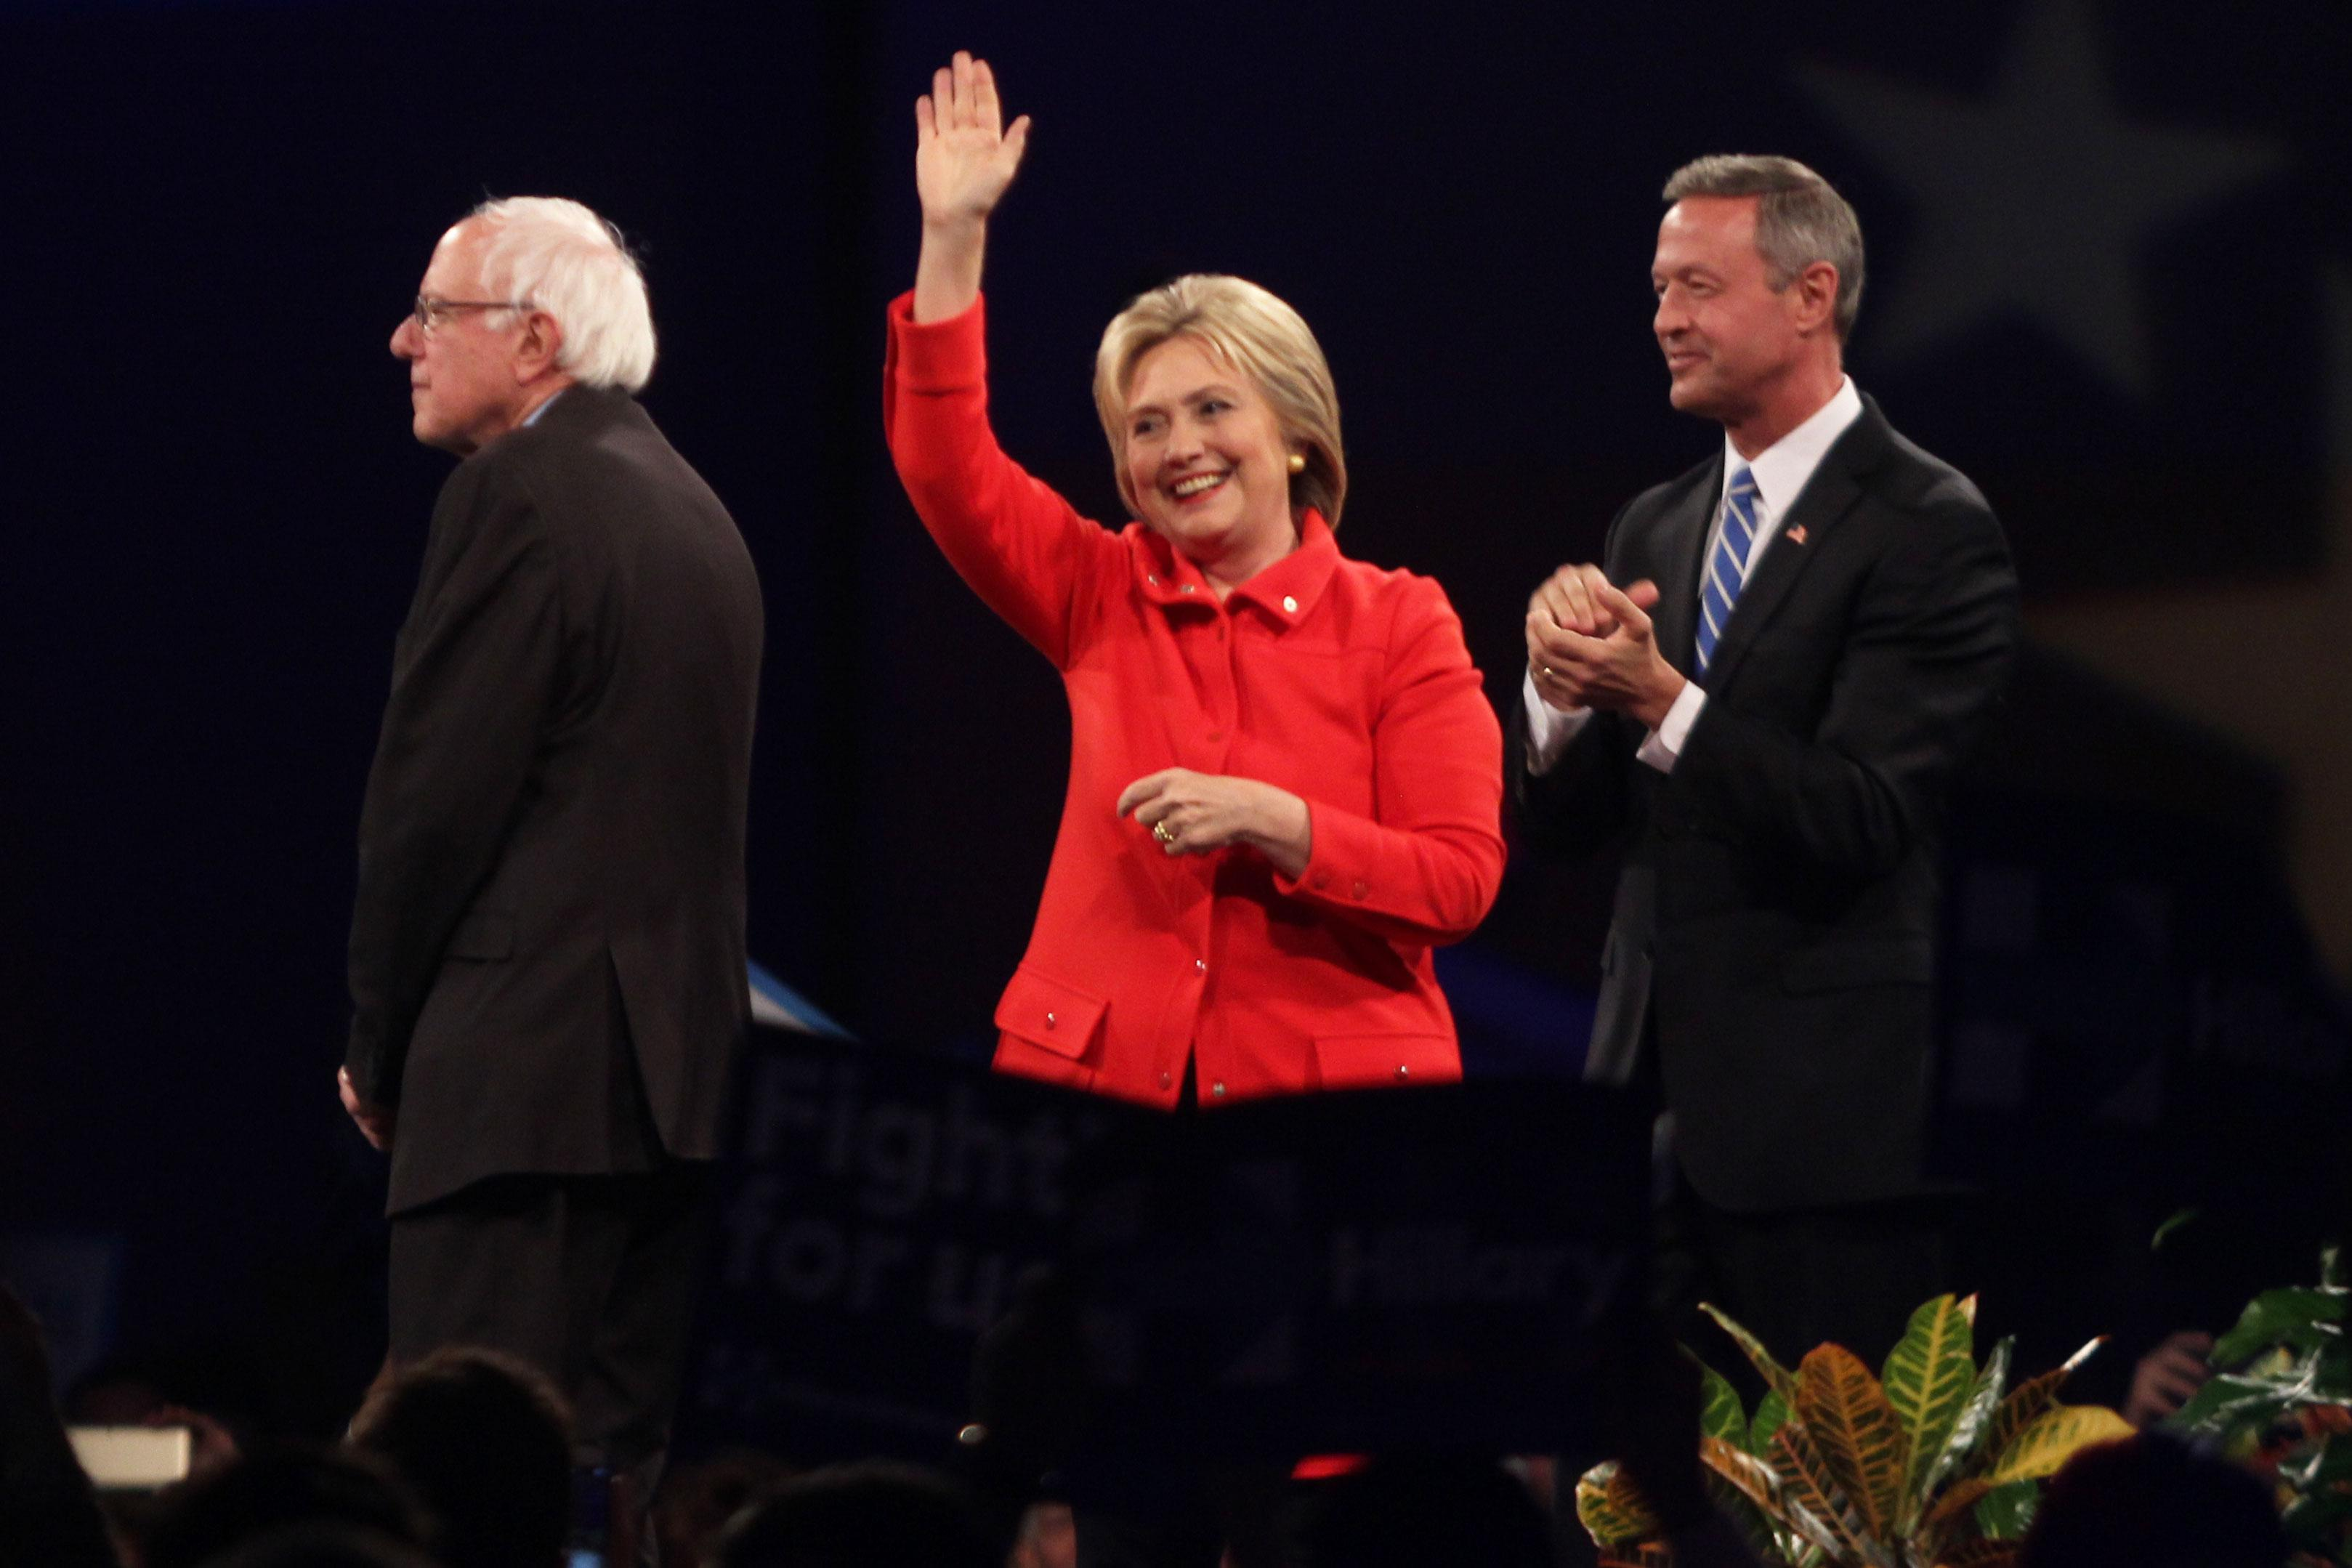 The three Democrat candidates, Bernie Sanders (left), Hillary Clinton (center) and Martin O'Malley (right), take the stage before the start of the keynote speeches.